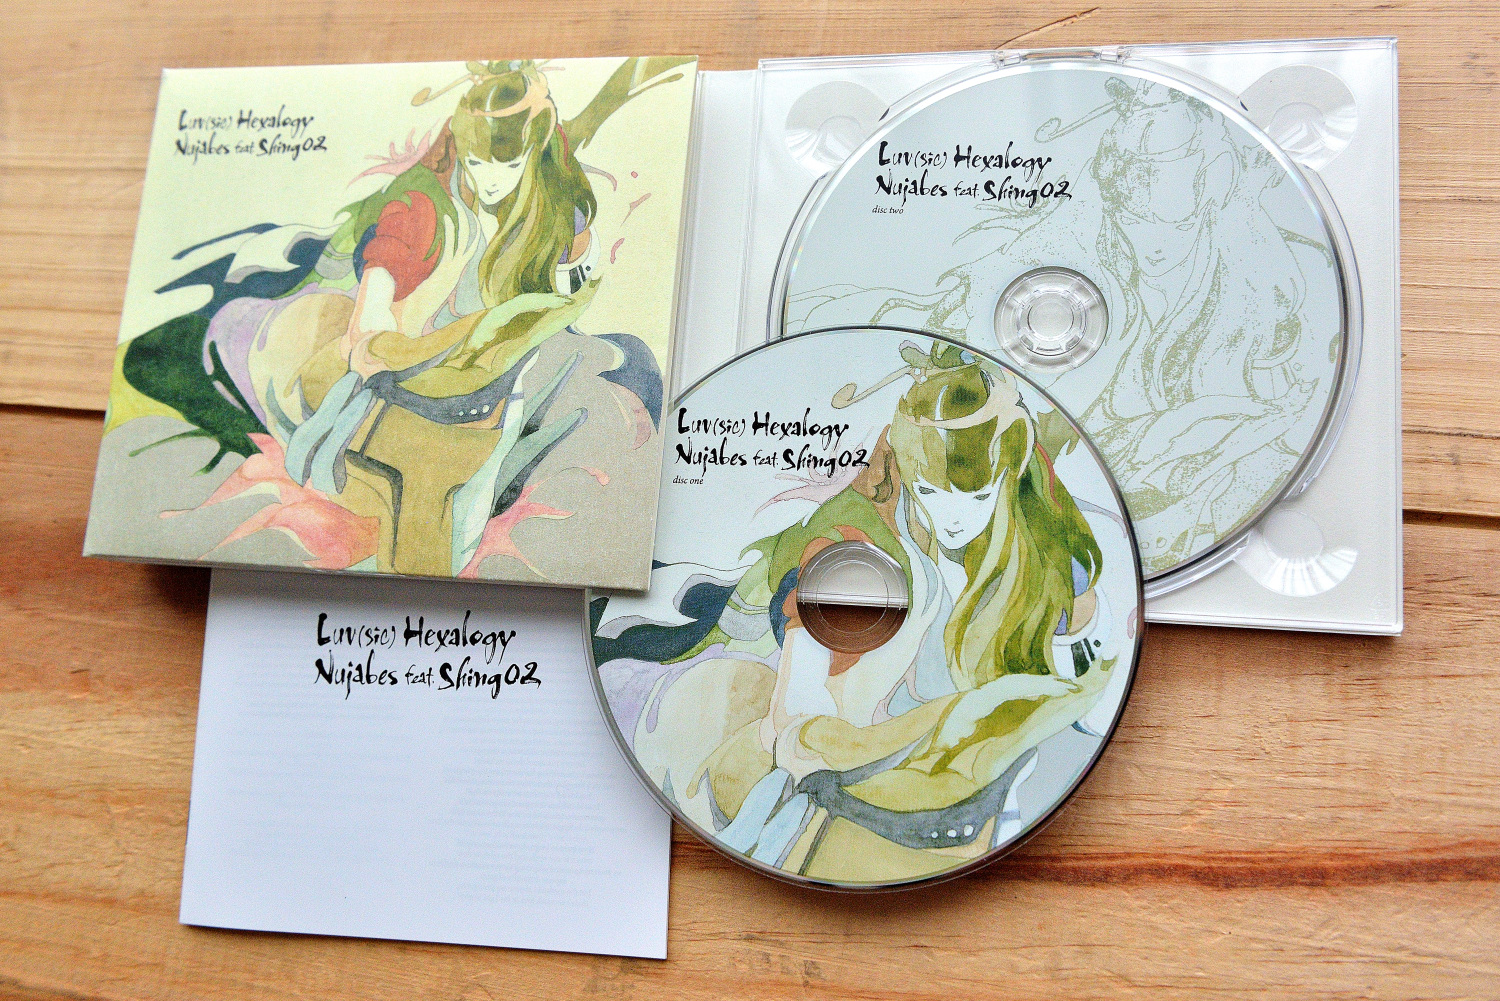 Luv(sic) Hexalogy』の写真、Nujabes